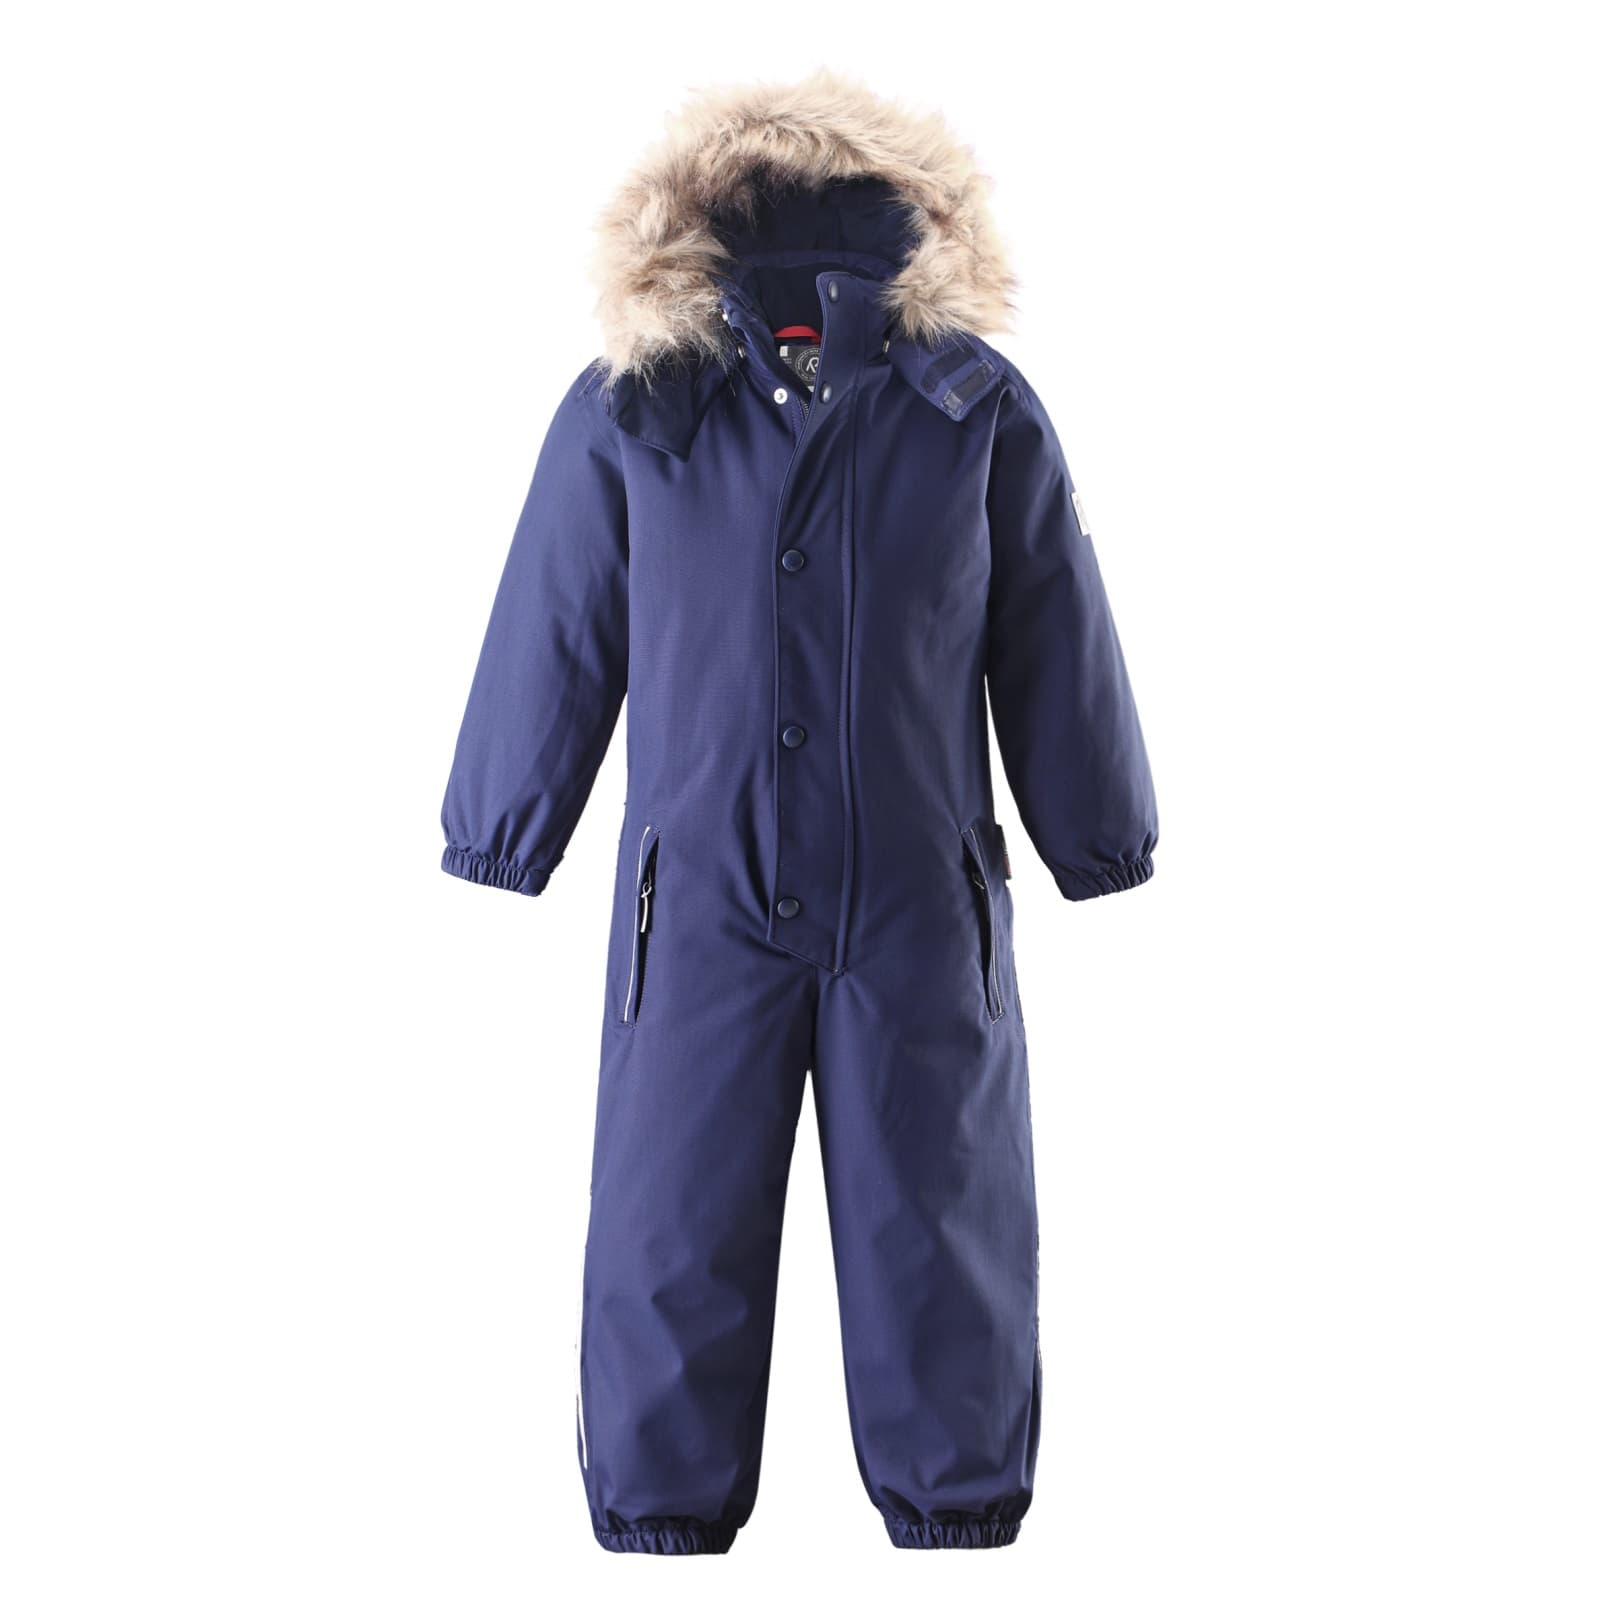 Buy Reima Stavanger Reimatec overall from Outnorth 2be6d690a4